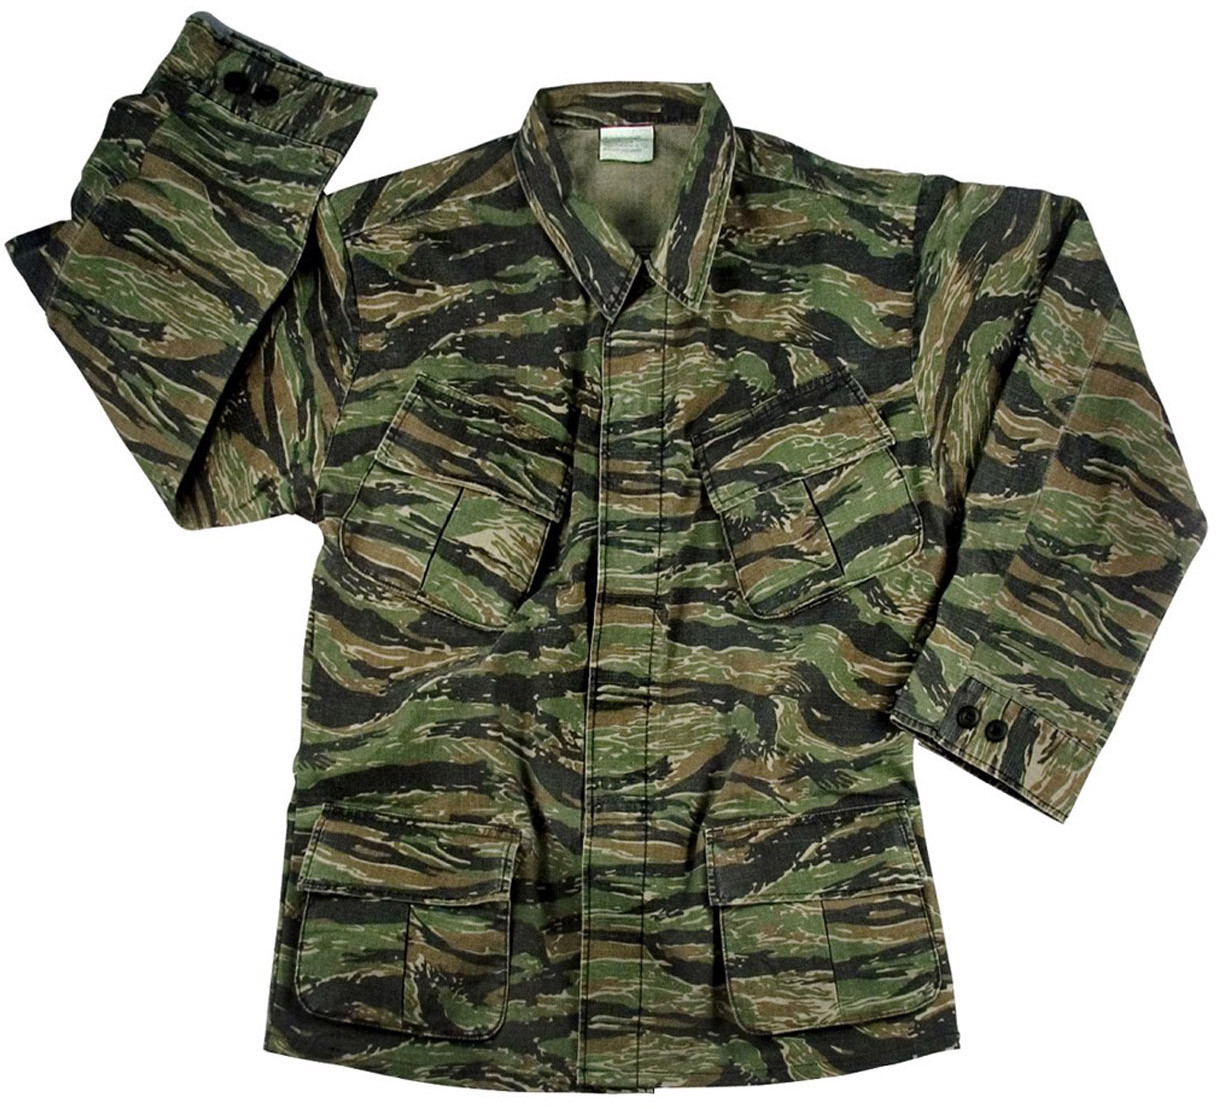 Tiger Stripe Camouflage 100% Cotton Rip-Stop Vintage Vietnam Military BDU  Fatigue Shirt 134122292c7